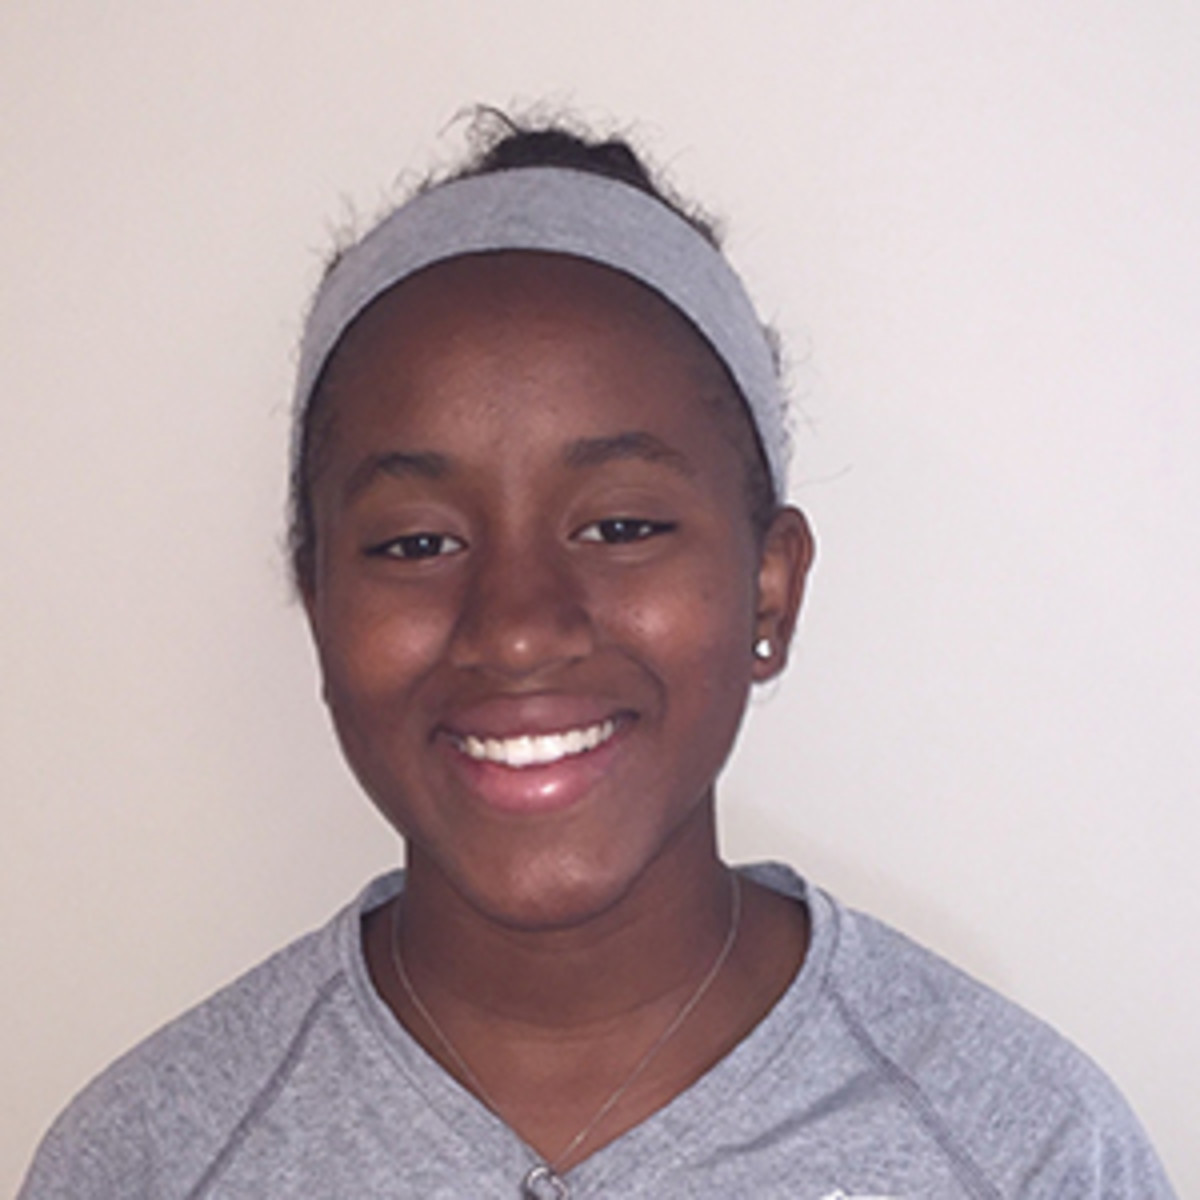 sportkids of the month october 2015 Tathiana Pierre